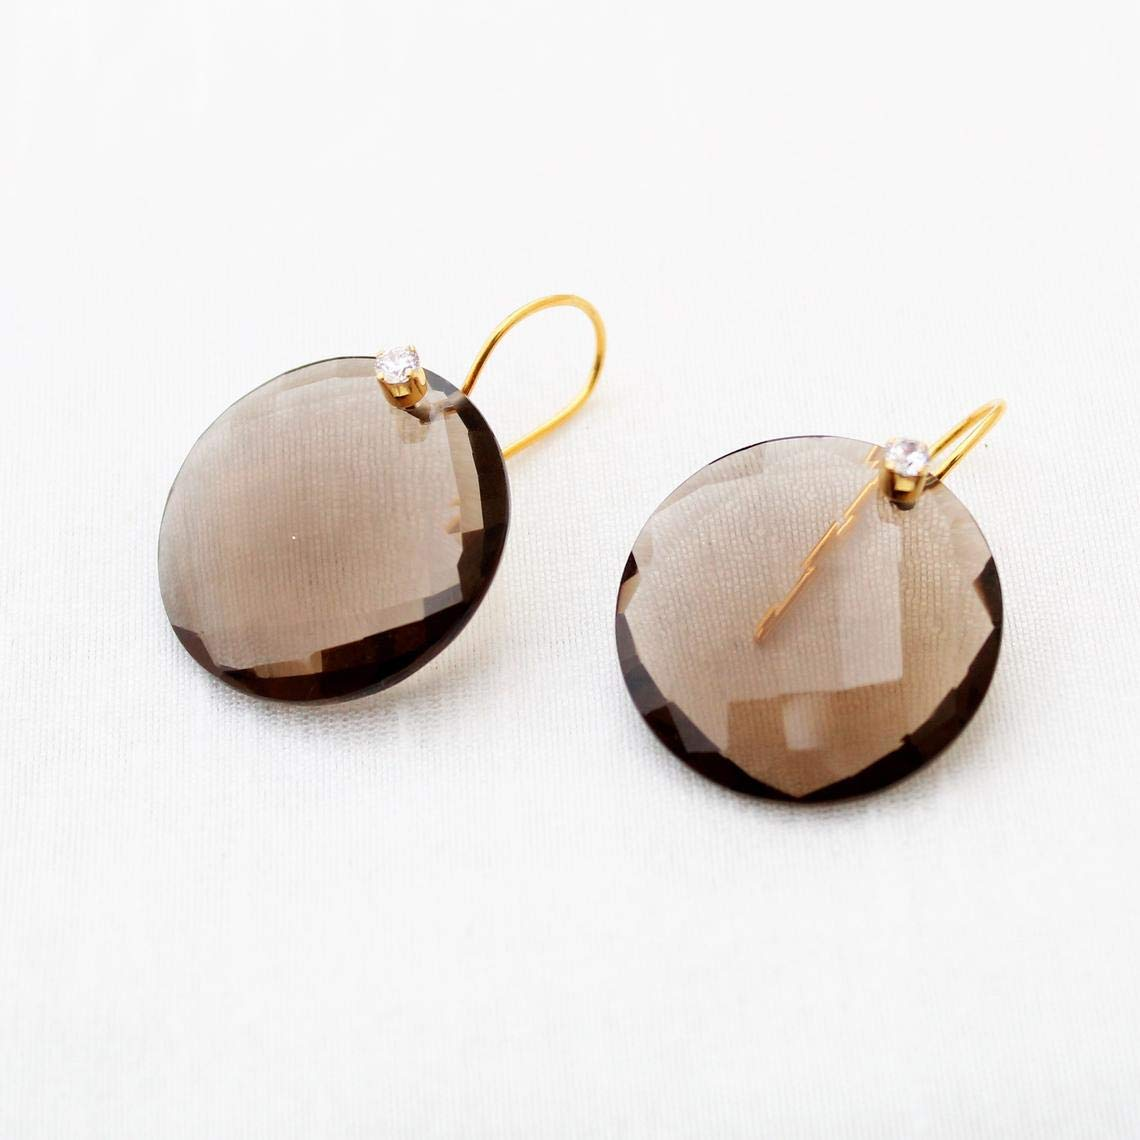 Natural Smoky Quartz Earrings Sterling Silver Yel Lowest price challenge 925 Max 53% OFF